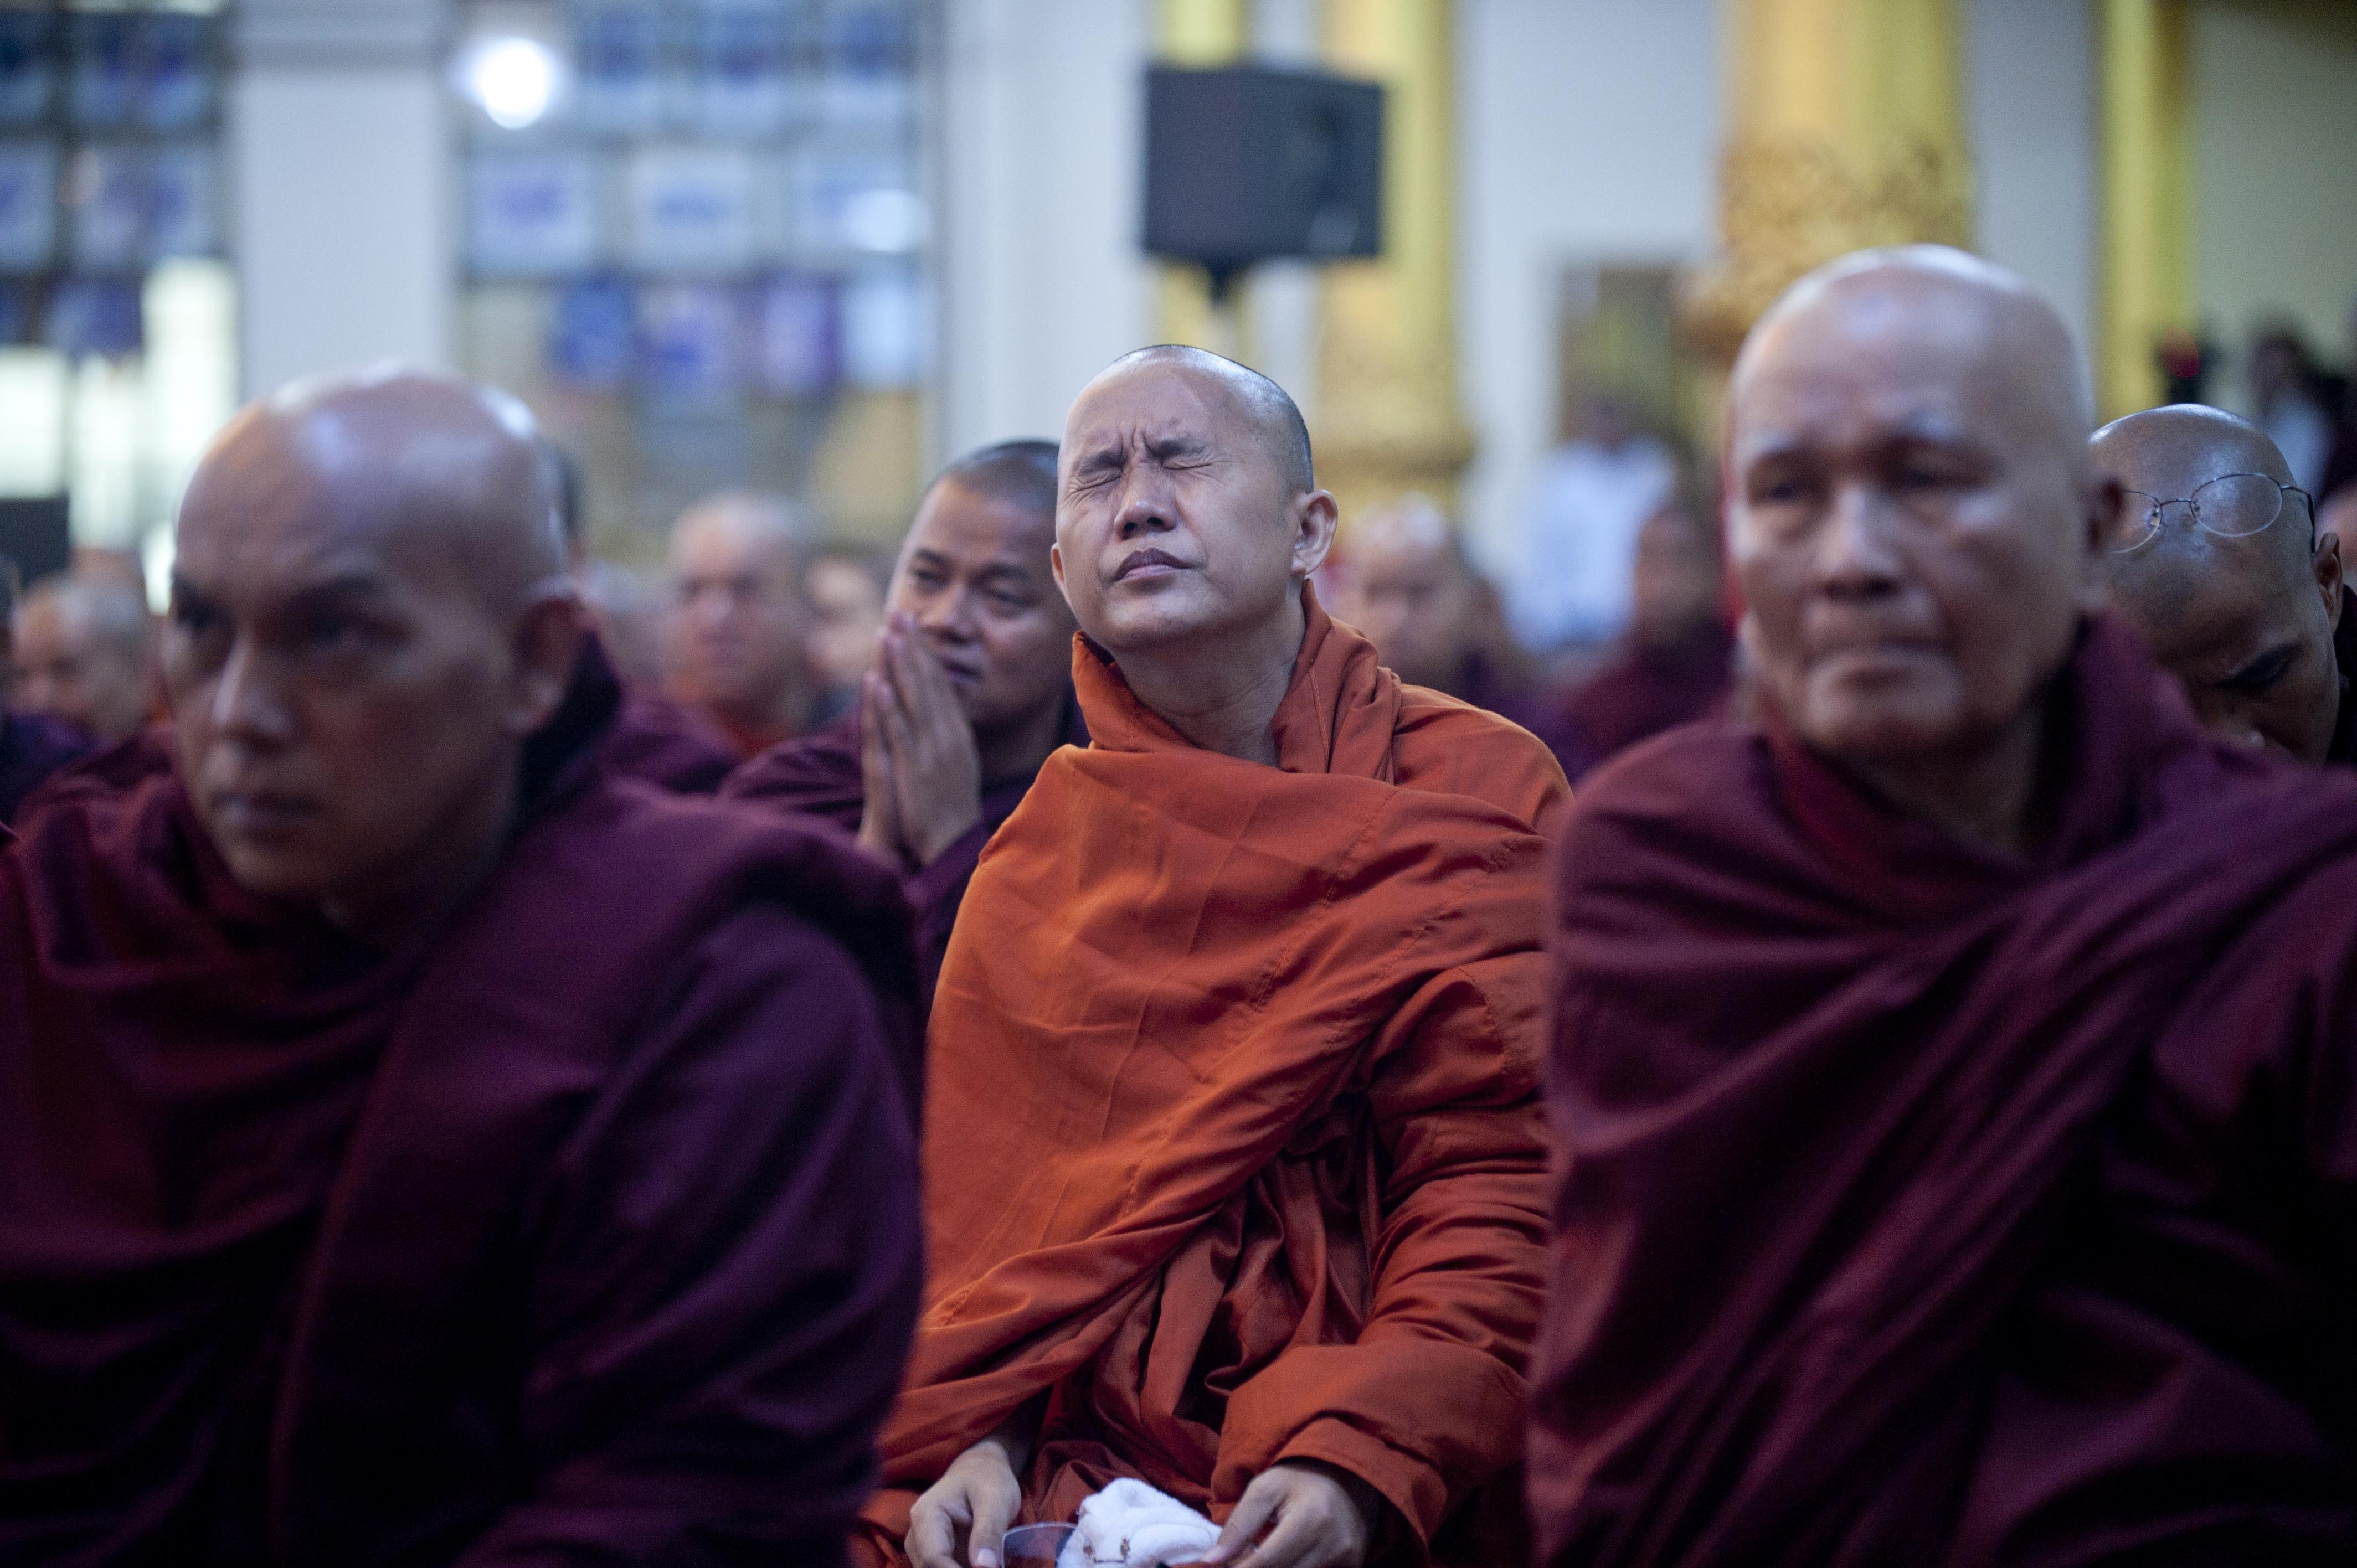 Controversial Burmese monk Wirathu, center, attends a meeting of Buddhist monks at a monastery outside Rangoon, Burma, on June 27, 2013